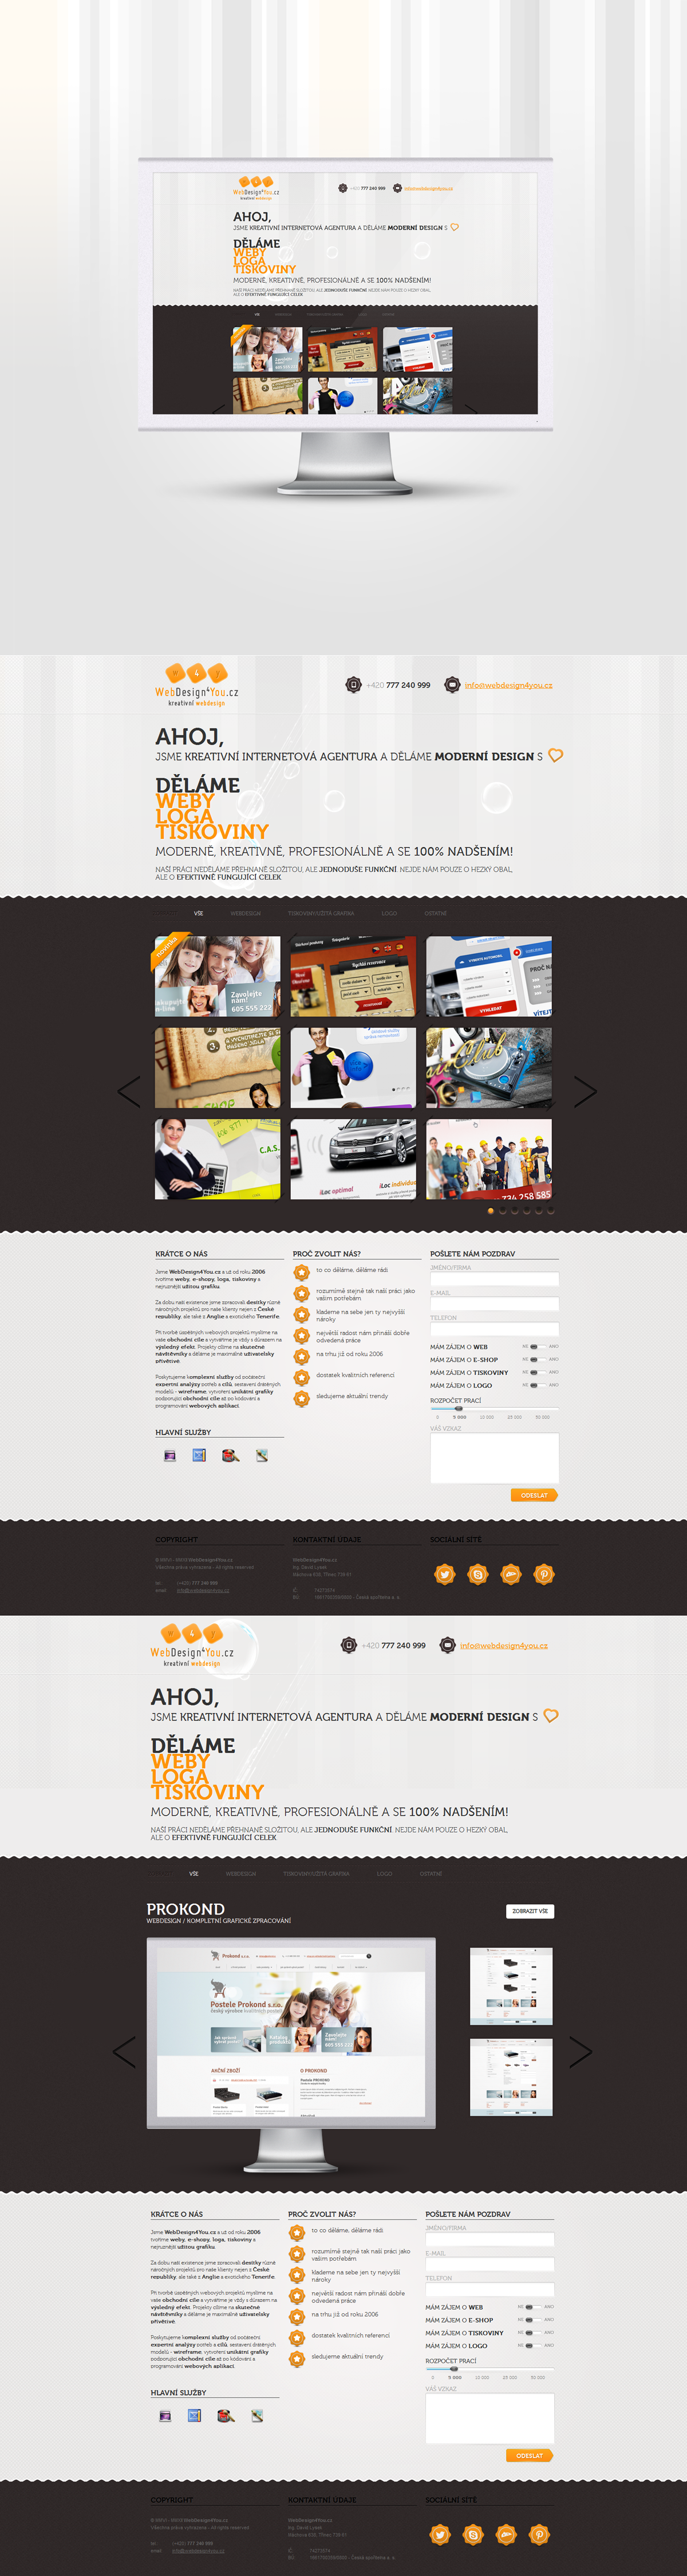 WebDesign4You.cz by lys036